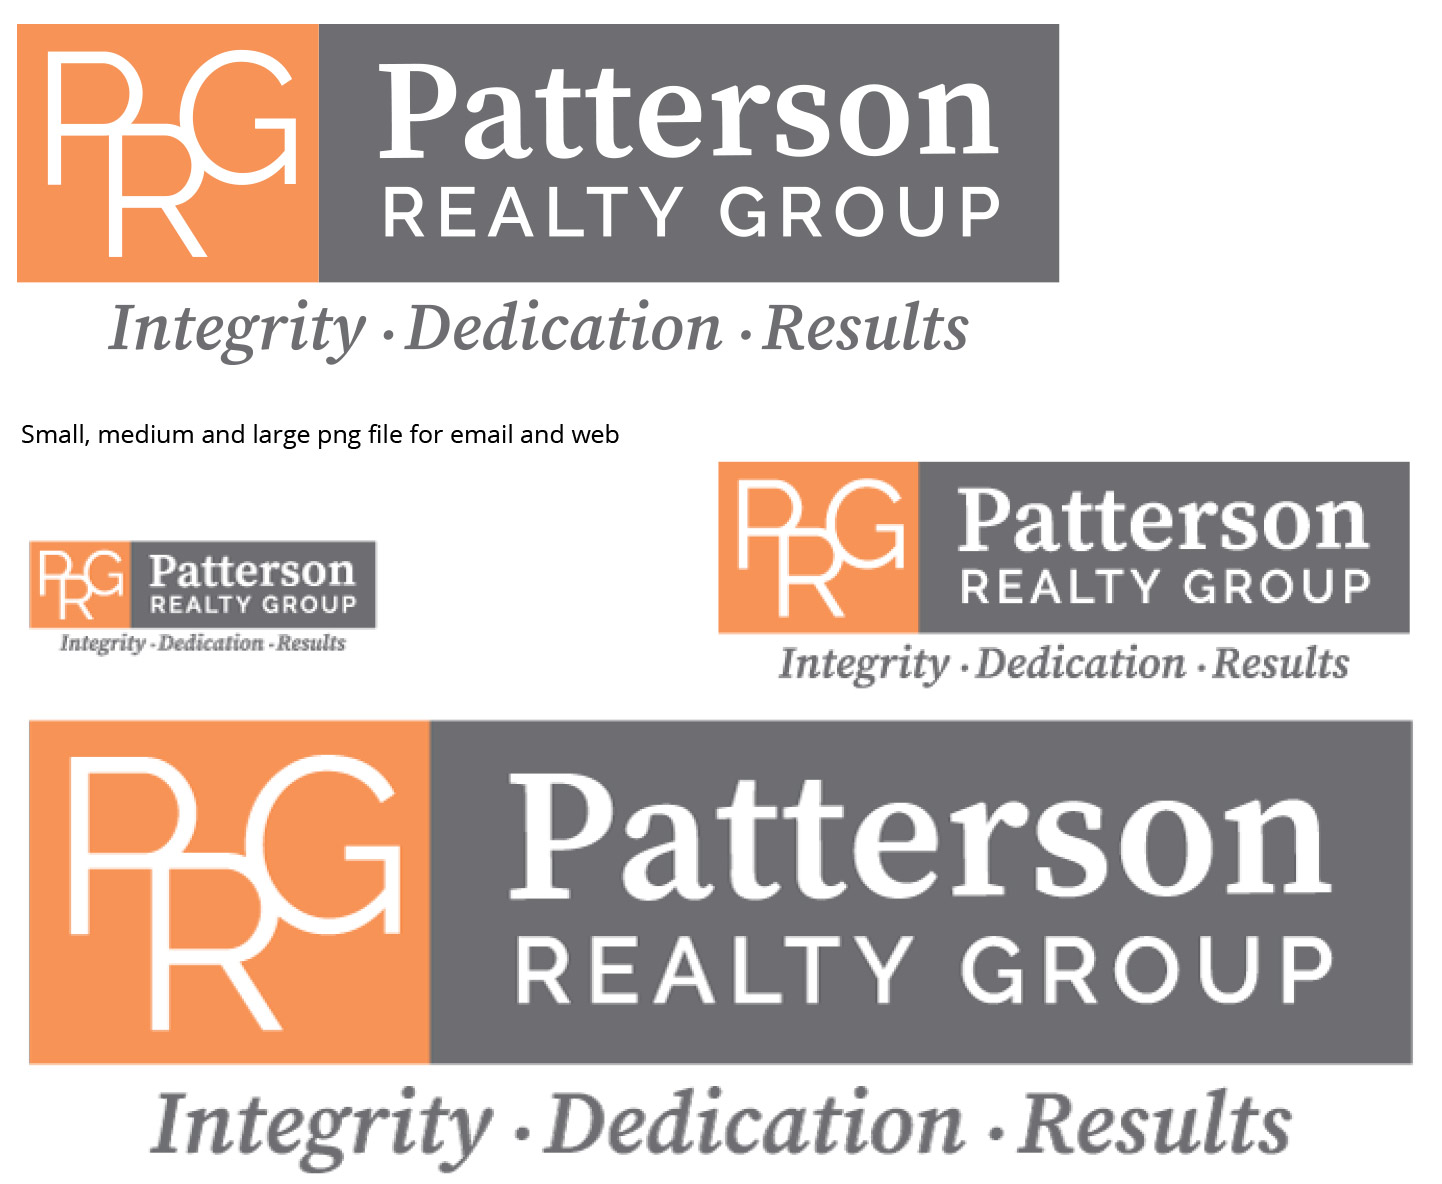 Patterson-Group-Logo-Guide-2